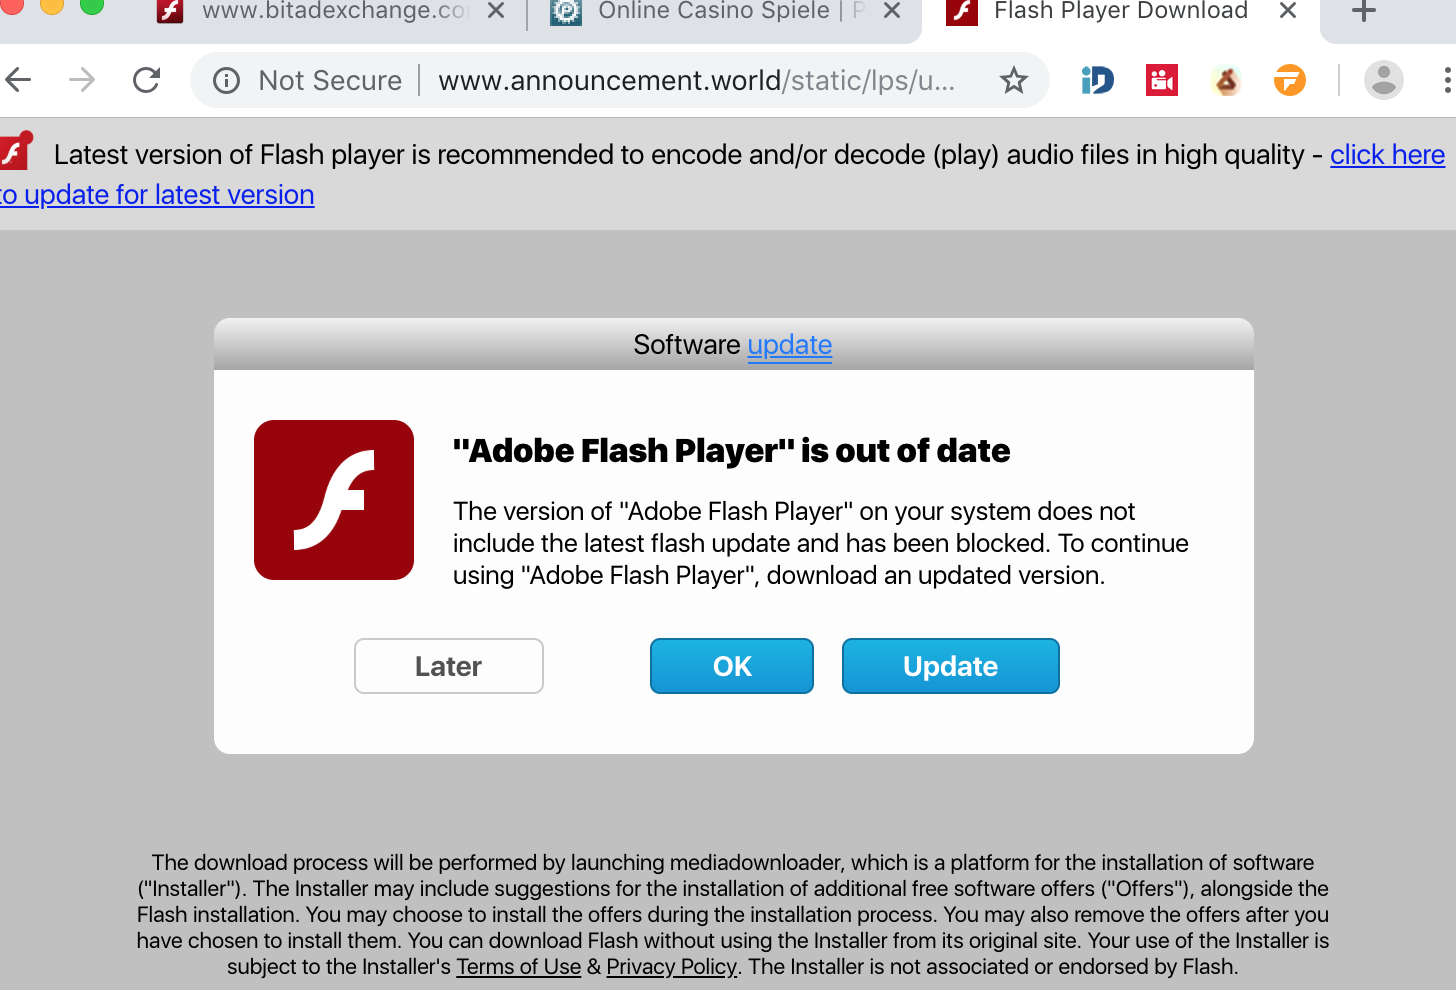 Announcement.world fake Adobe Flash Player alert